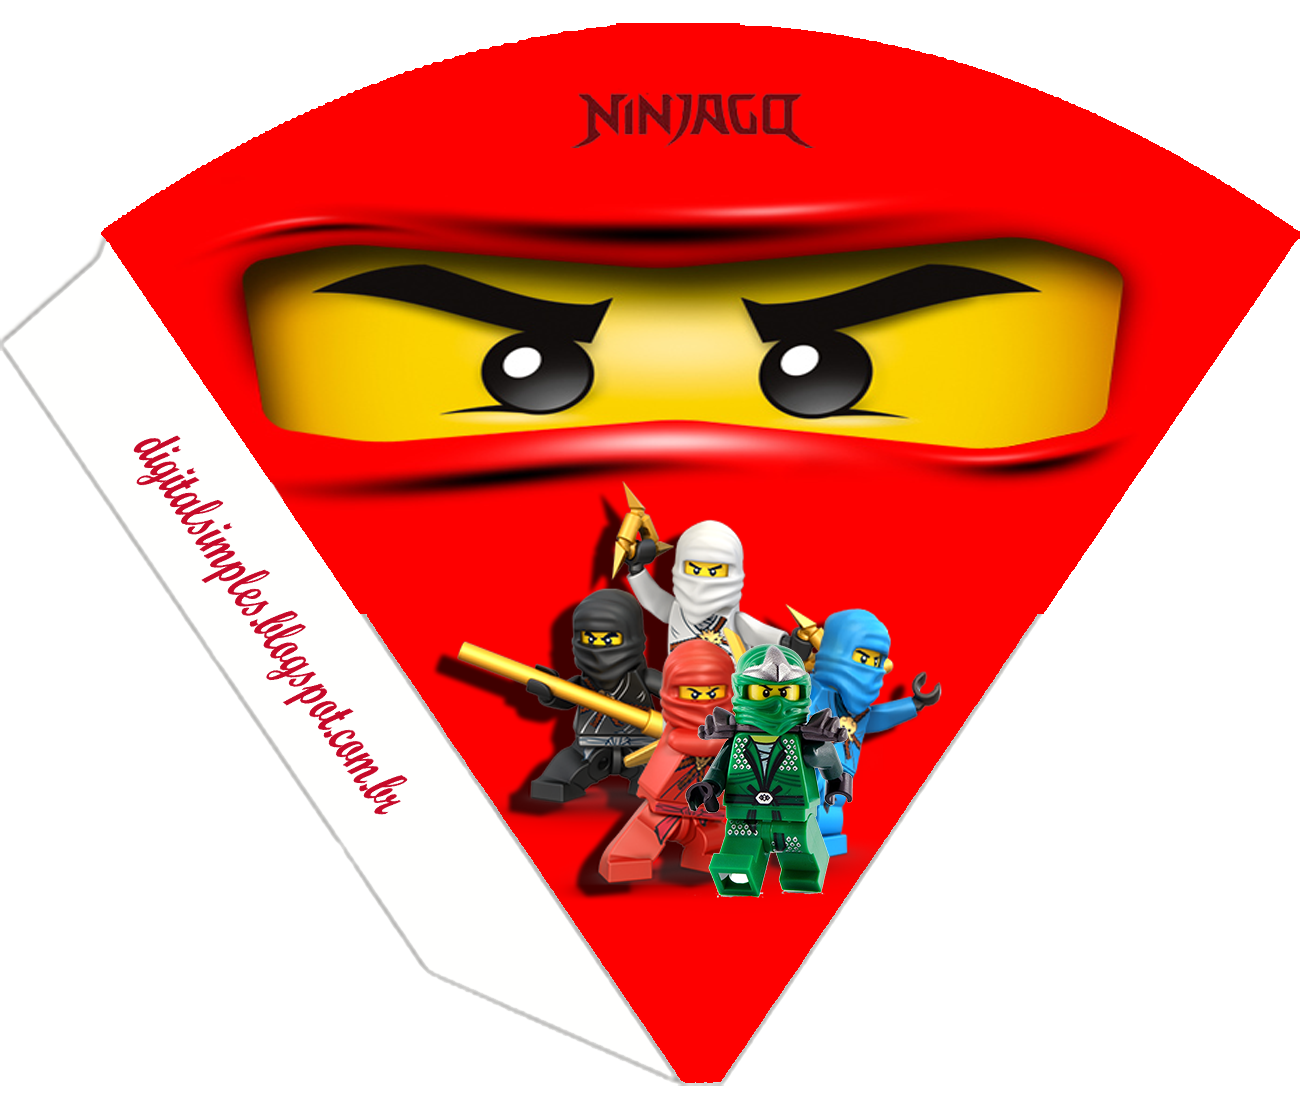 Lego Ninjago Invitations with awesome invitations design